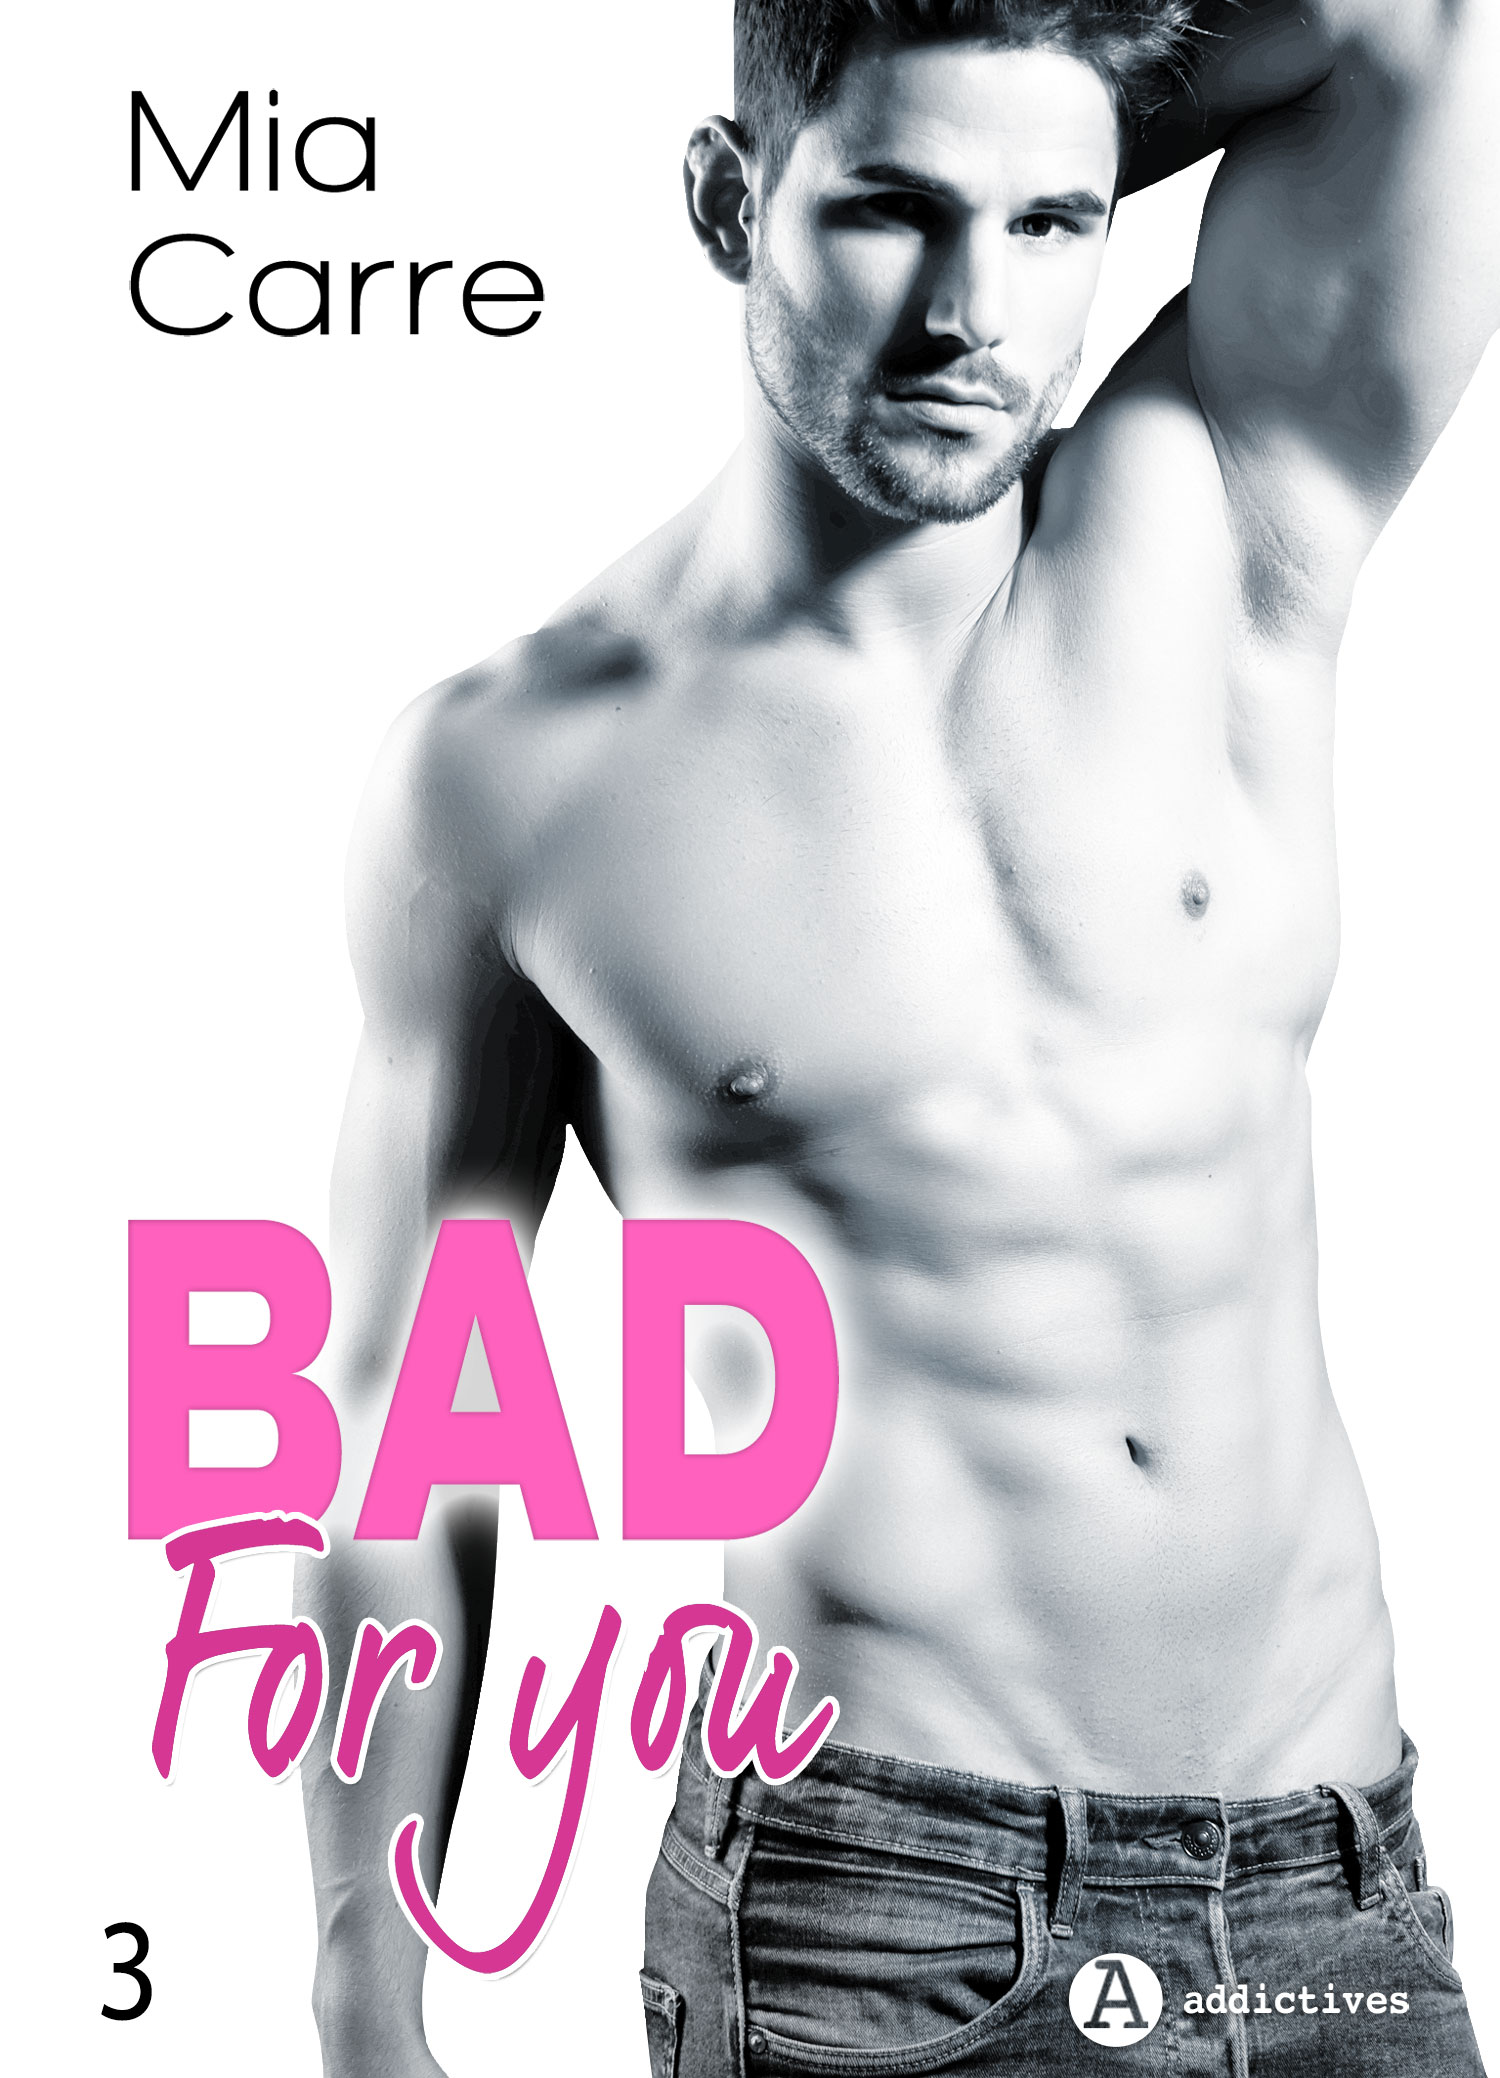 Bad for you – 3